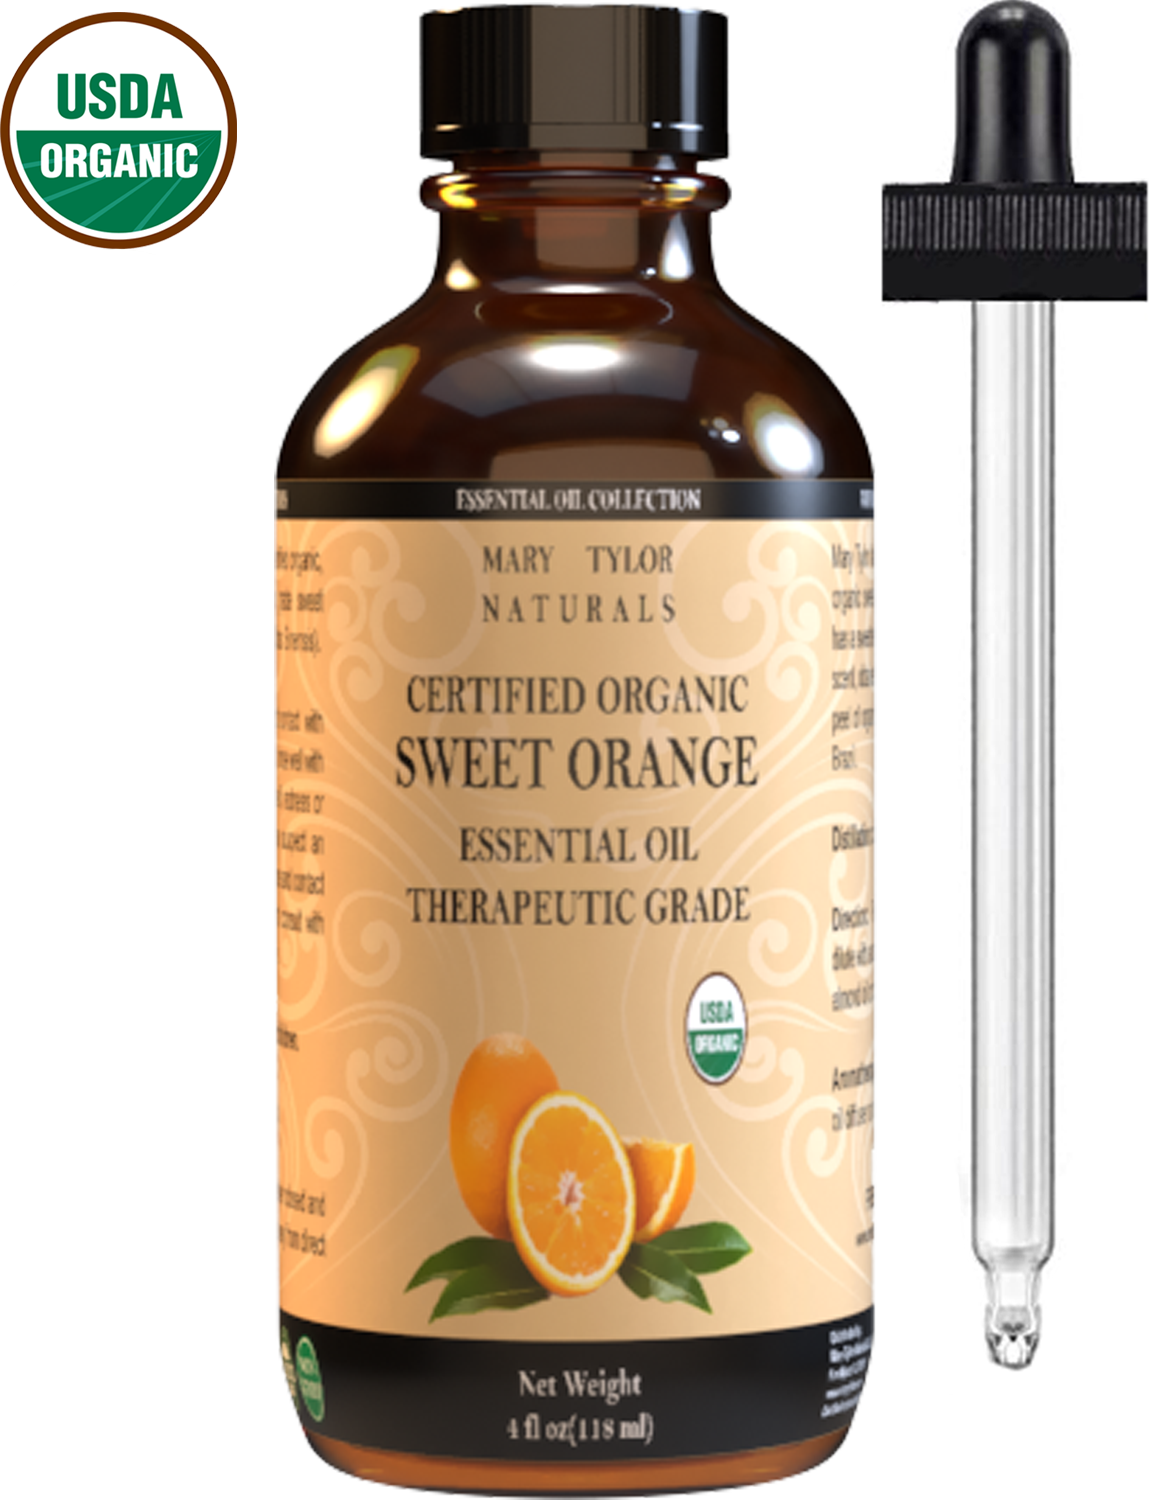 organic orange essential oil by mary tylor naturals